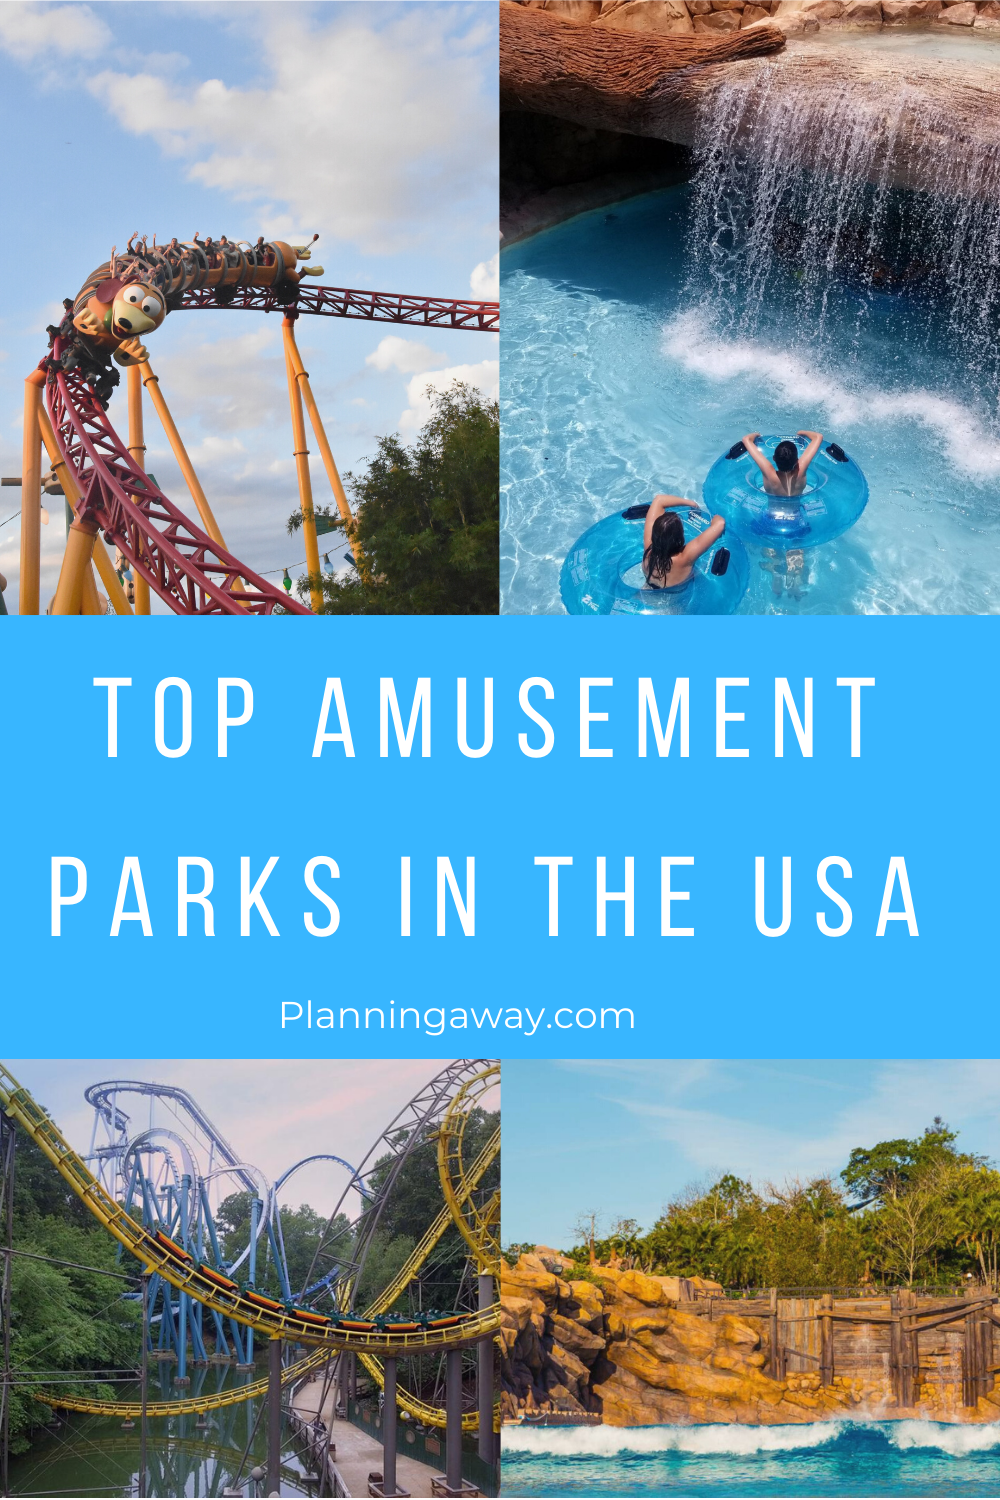 Best Amusement Parks In the USA